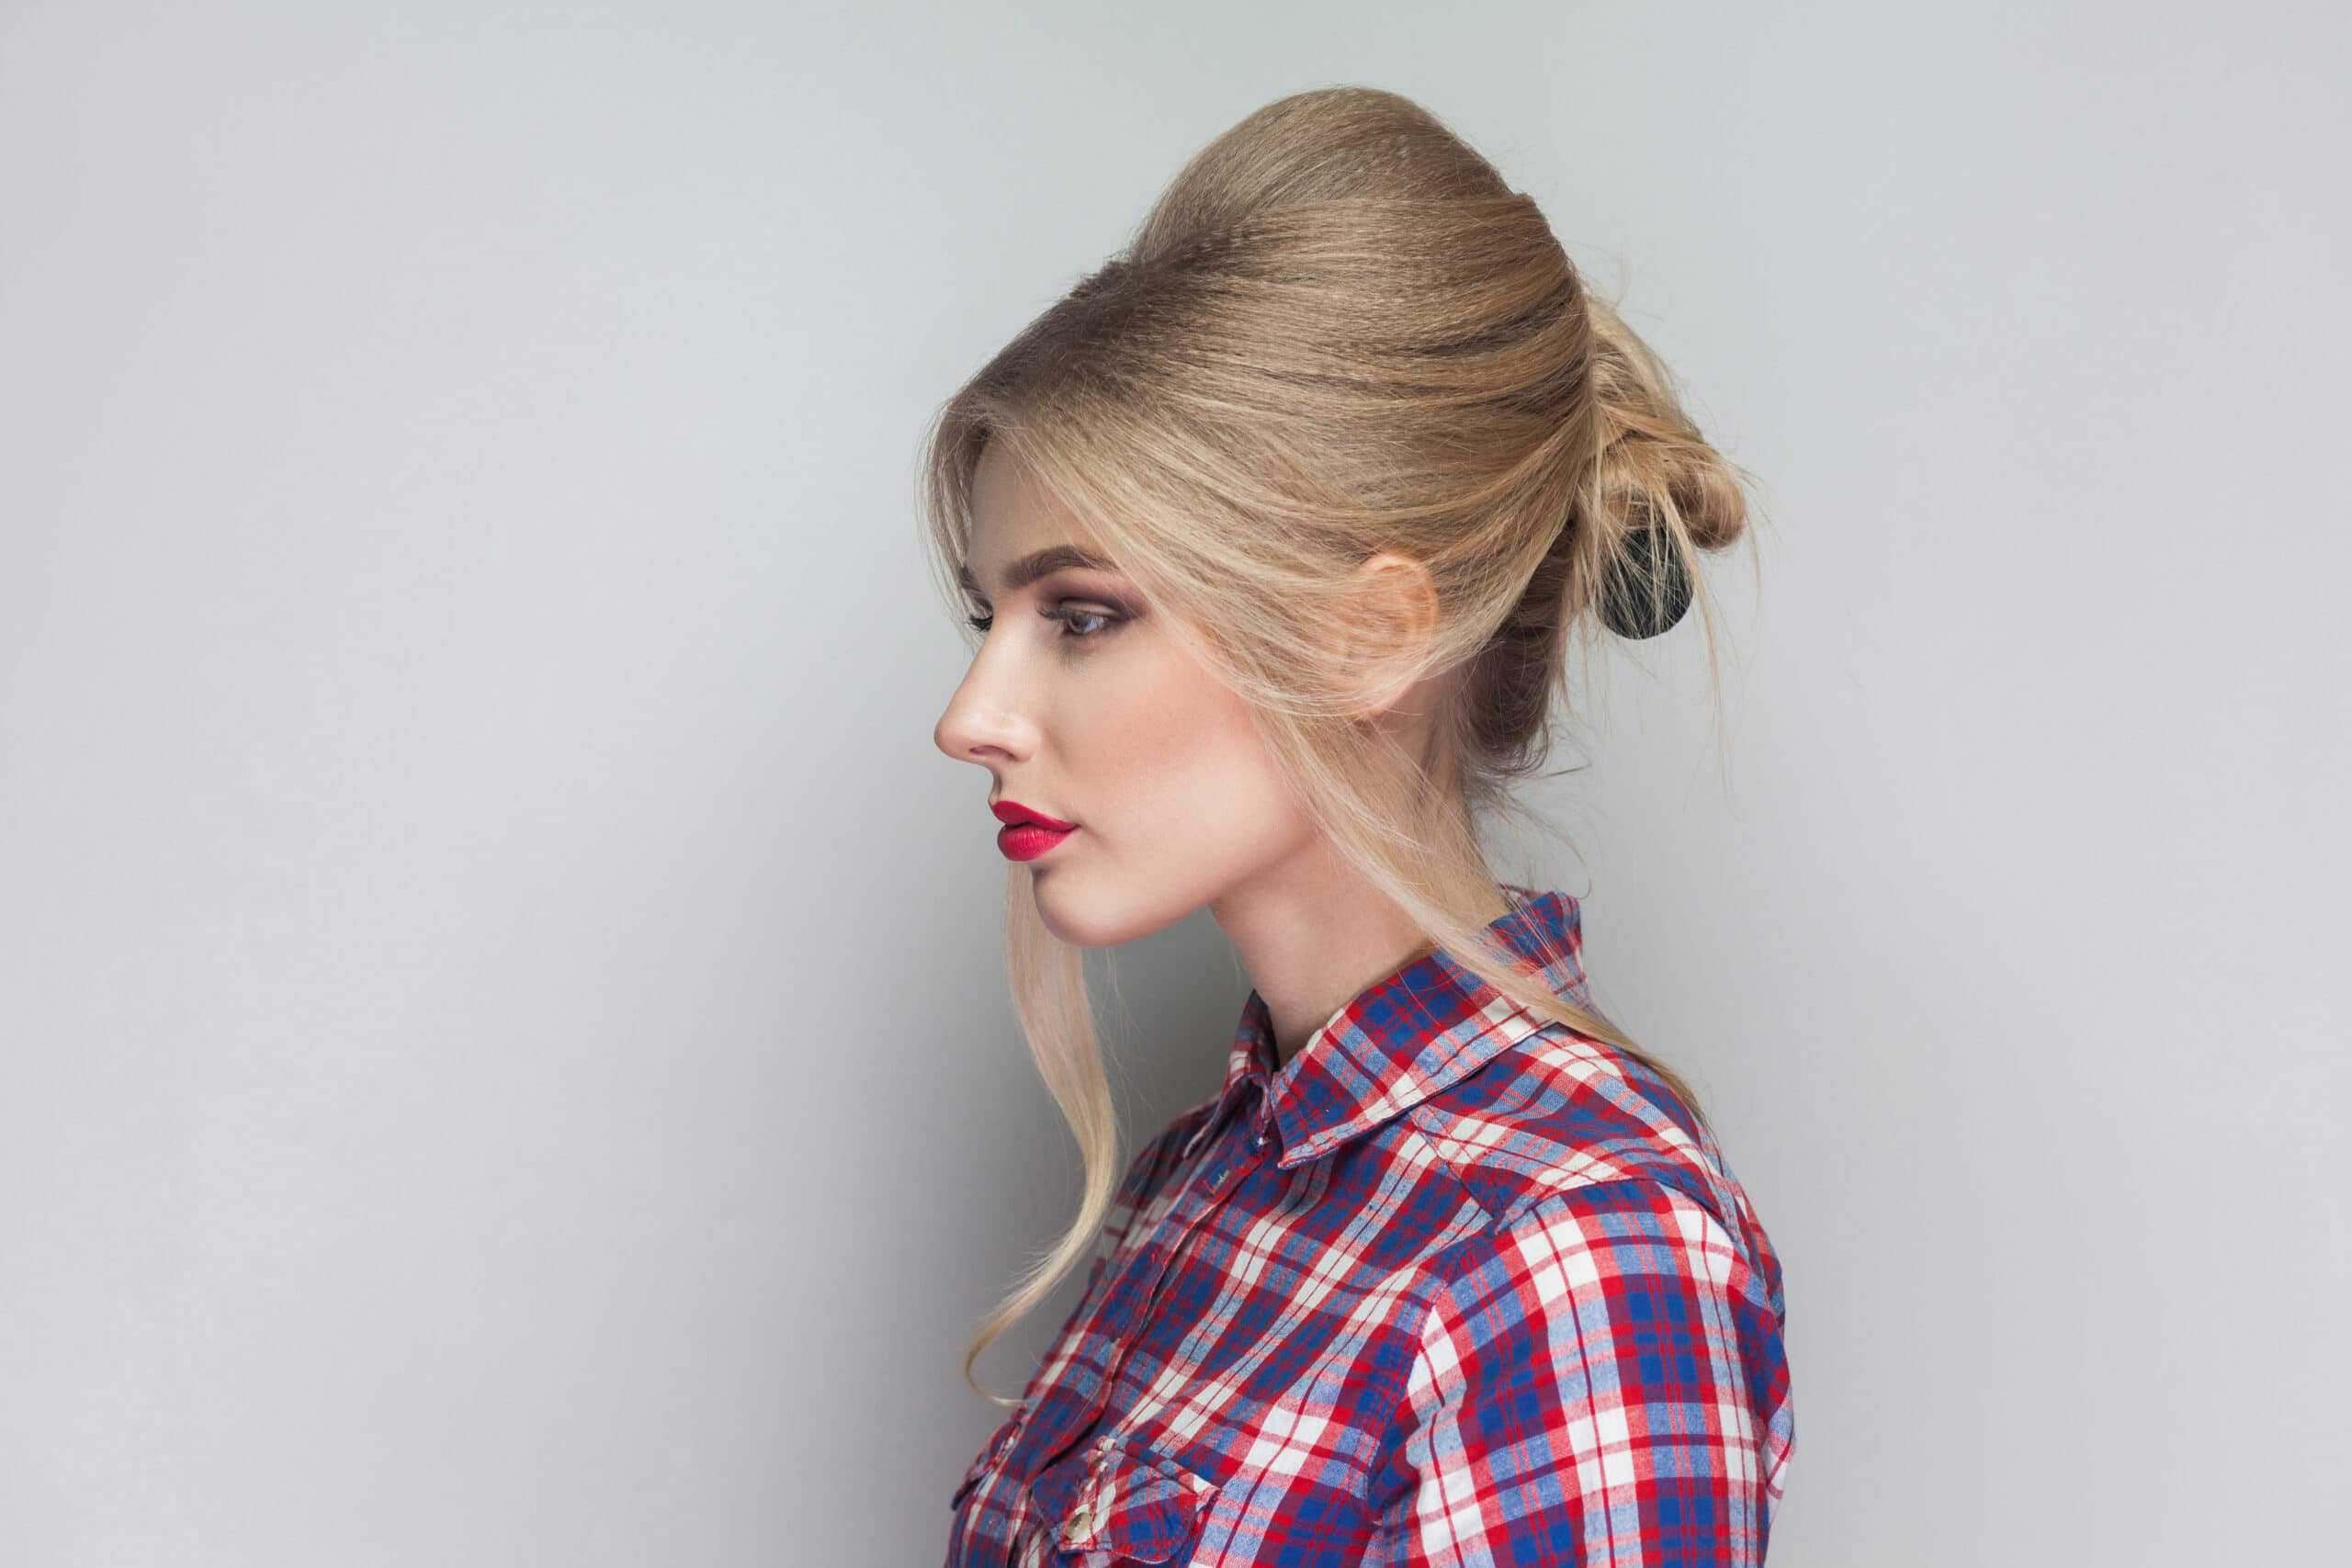 Profile side view of beautiful girl with pink checkered shirt, collected updo hairstyle, red lips and makeup standing with seious face and looking away. indoor studio shot, isolated on gray background